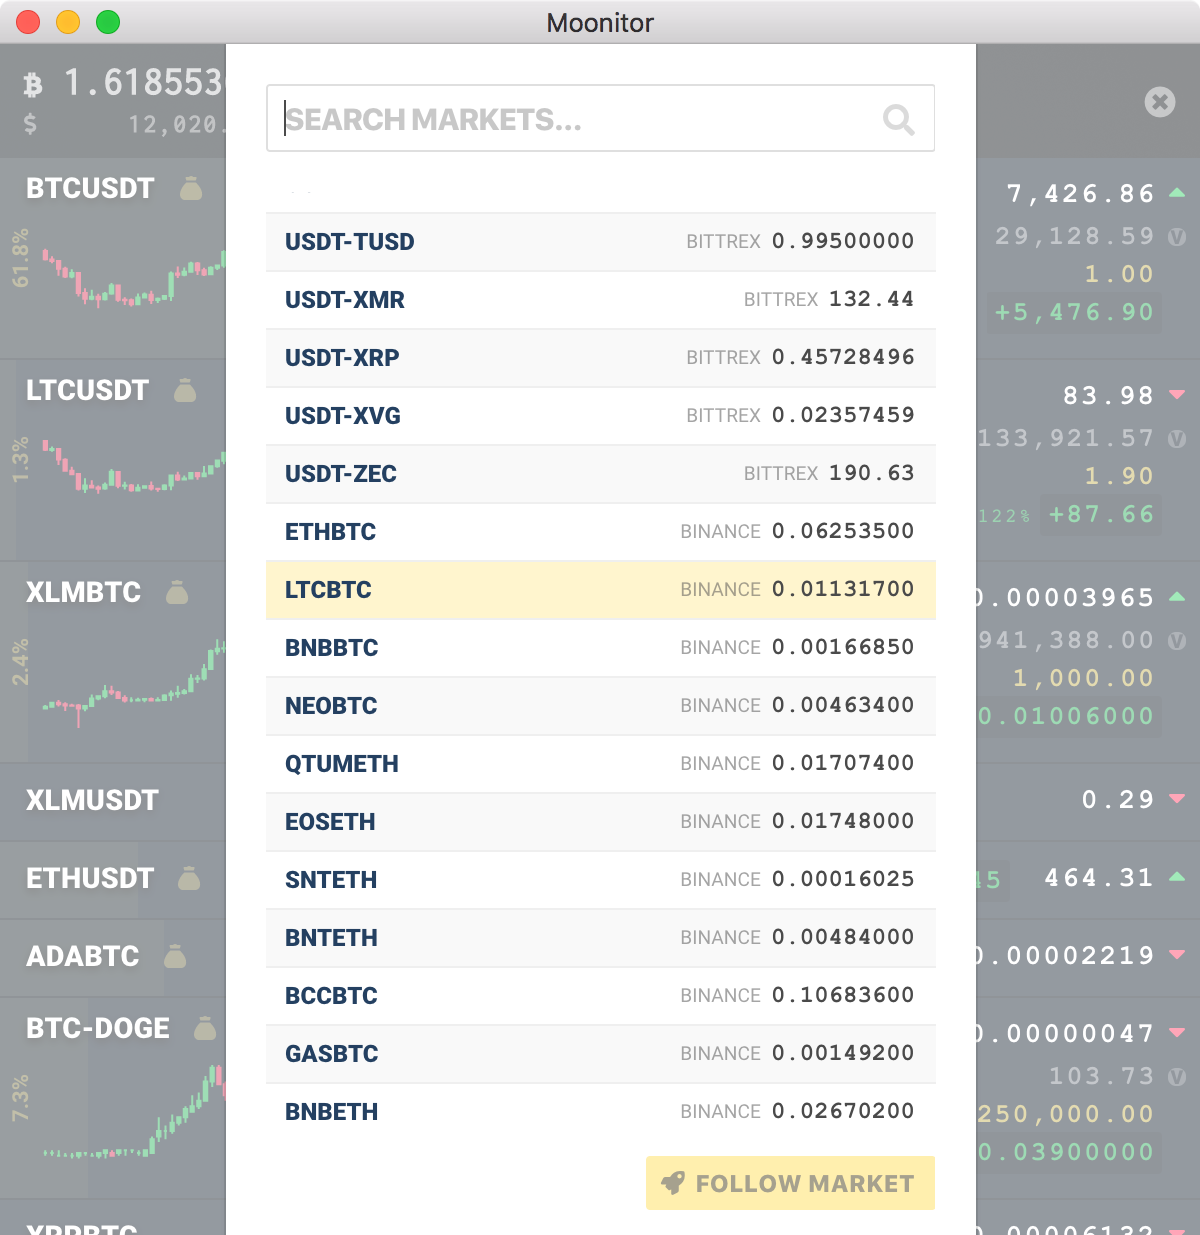 moonitor-0.5.0-bitcoin-altcoins-markets.png